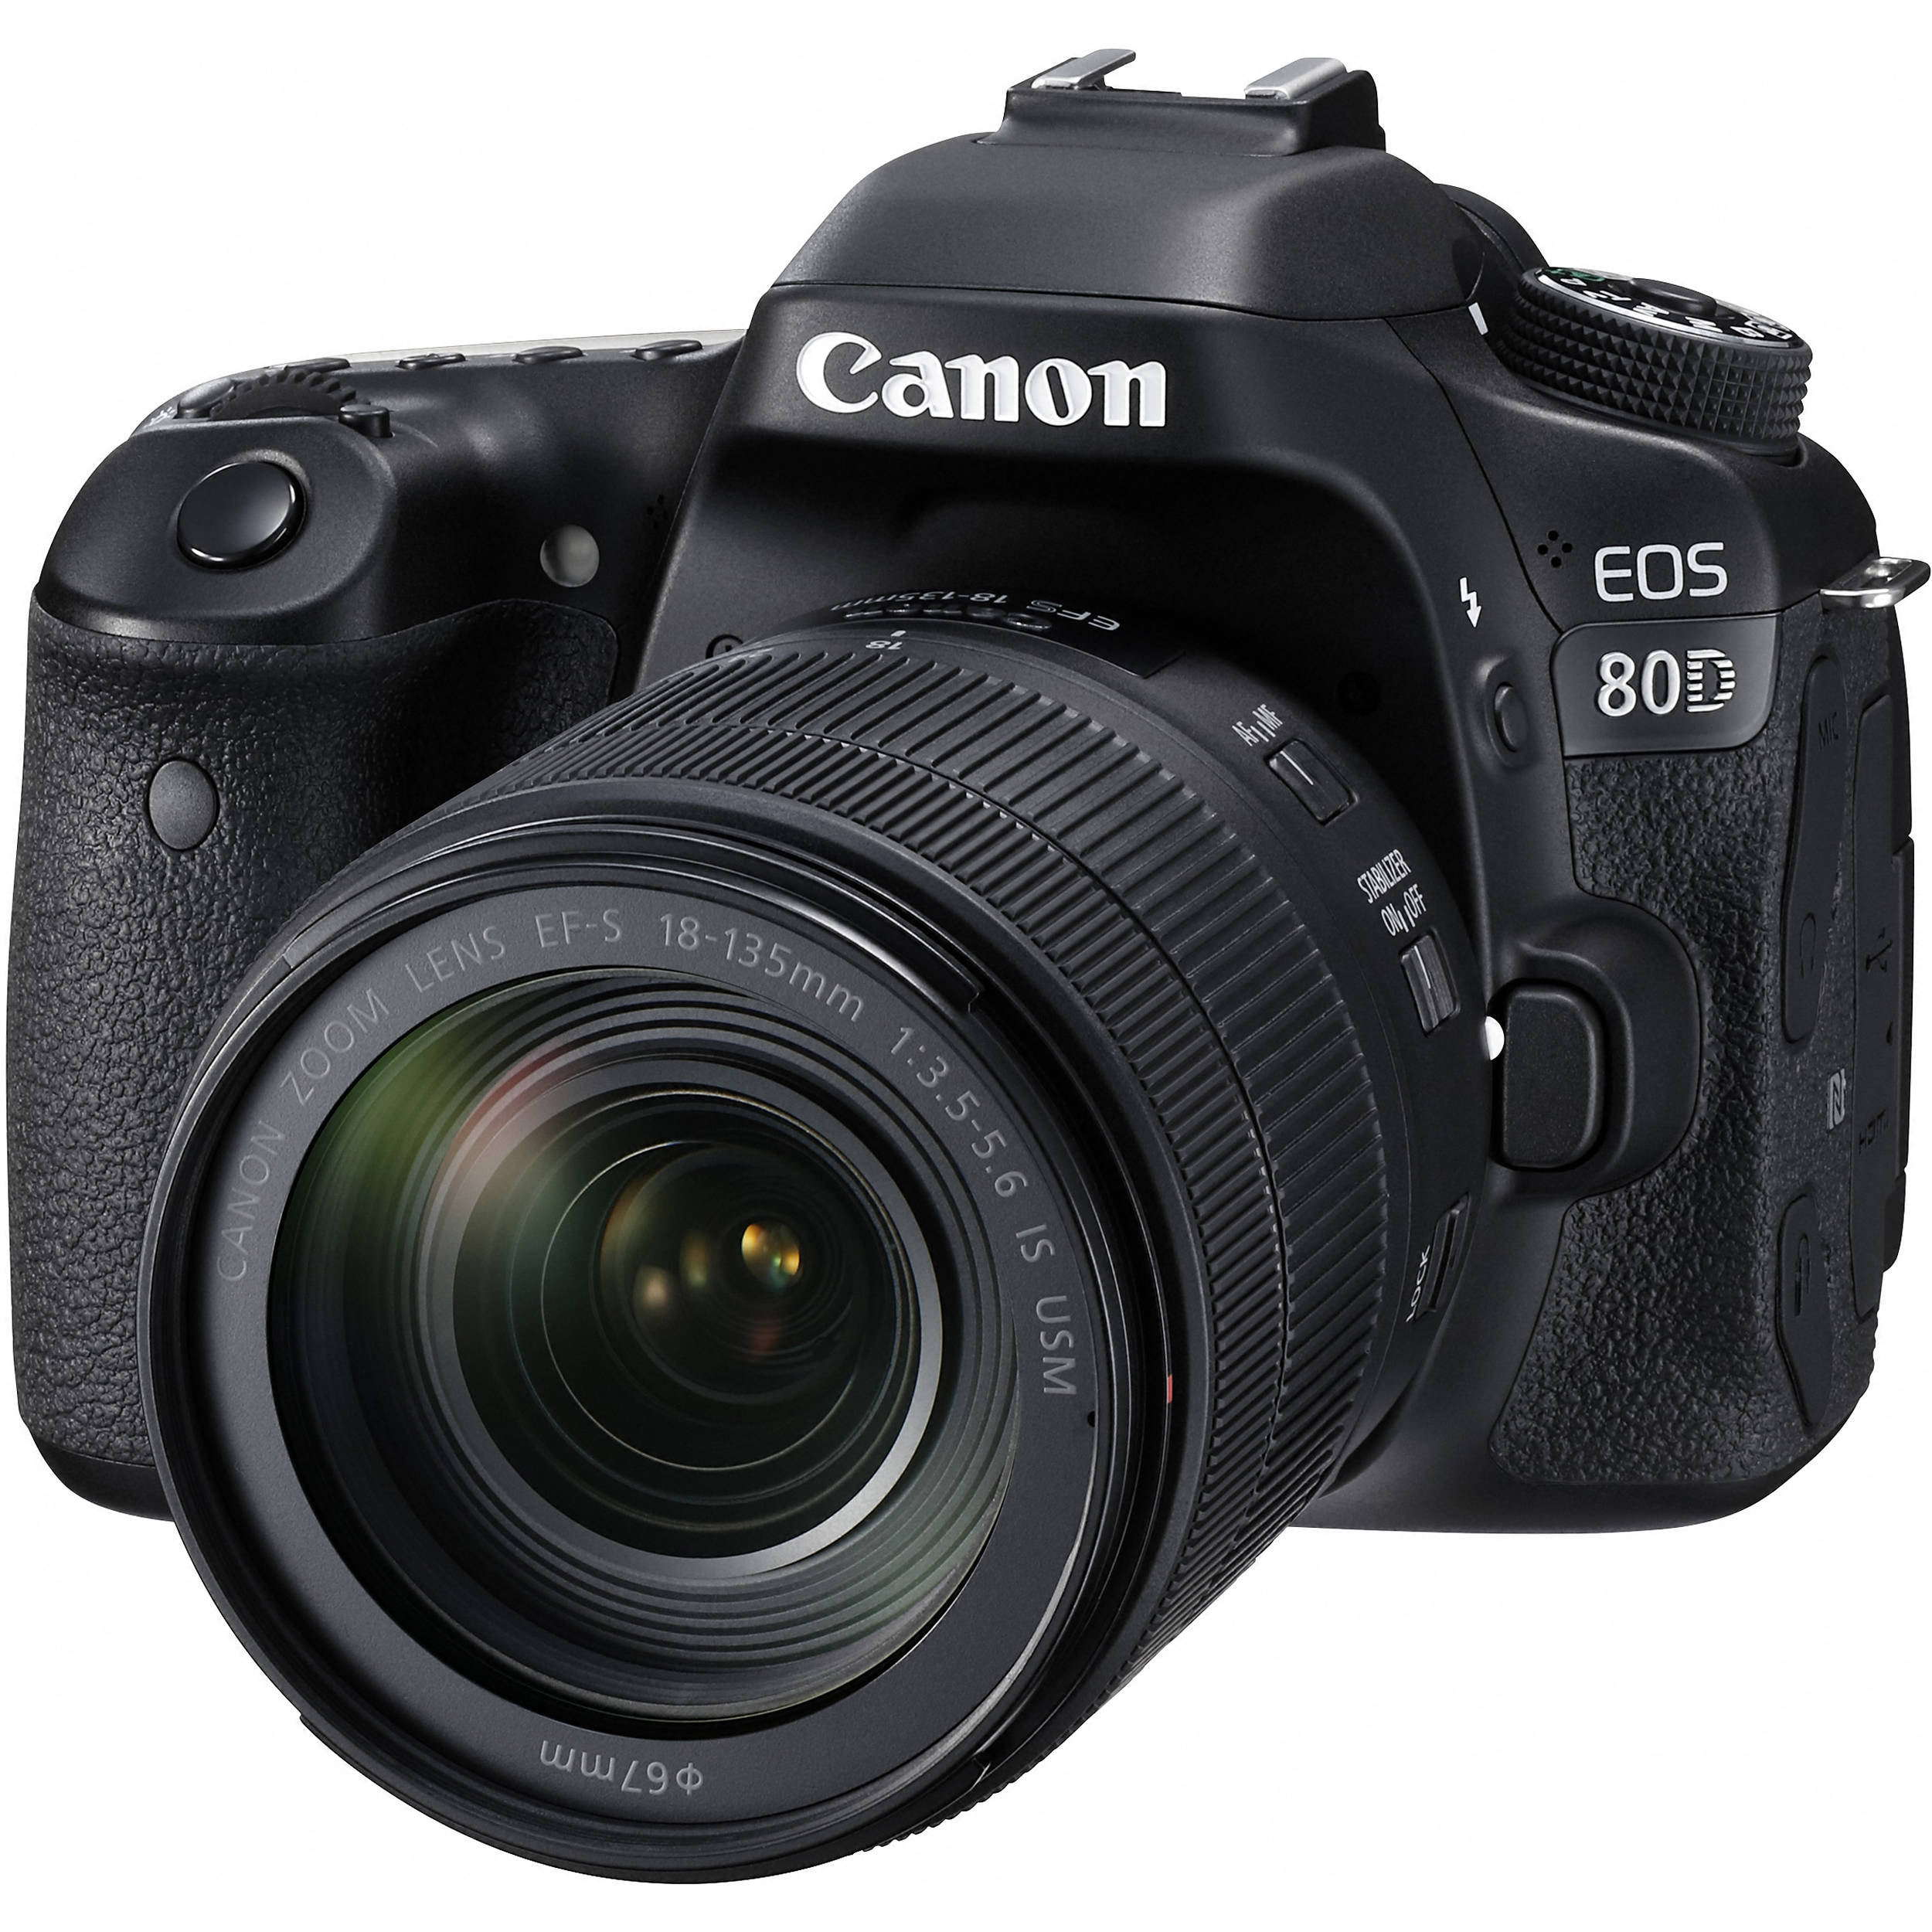 Camera How Much Are Dslr Cameras canon eos 80d dslr camera with 18 135mm lens 1263c006 bh photo lens